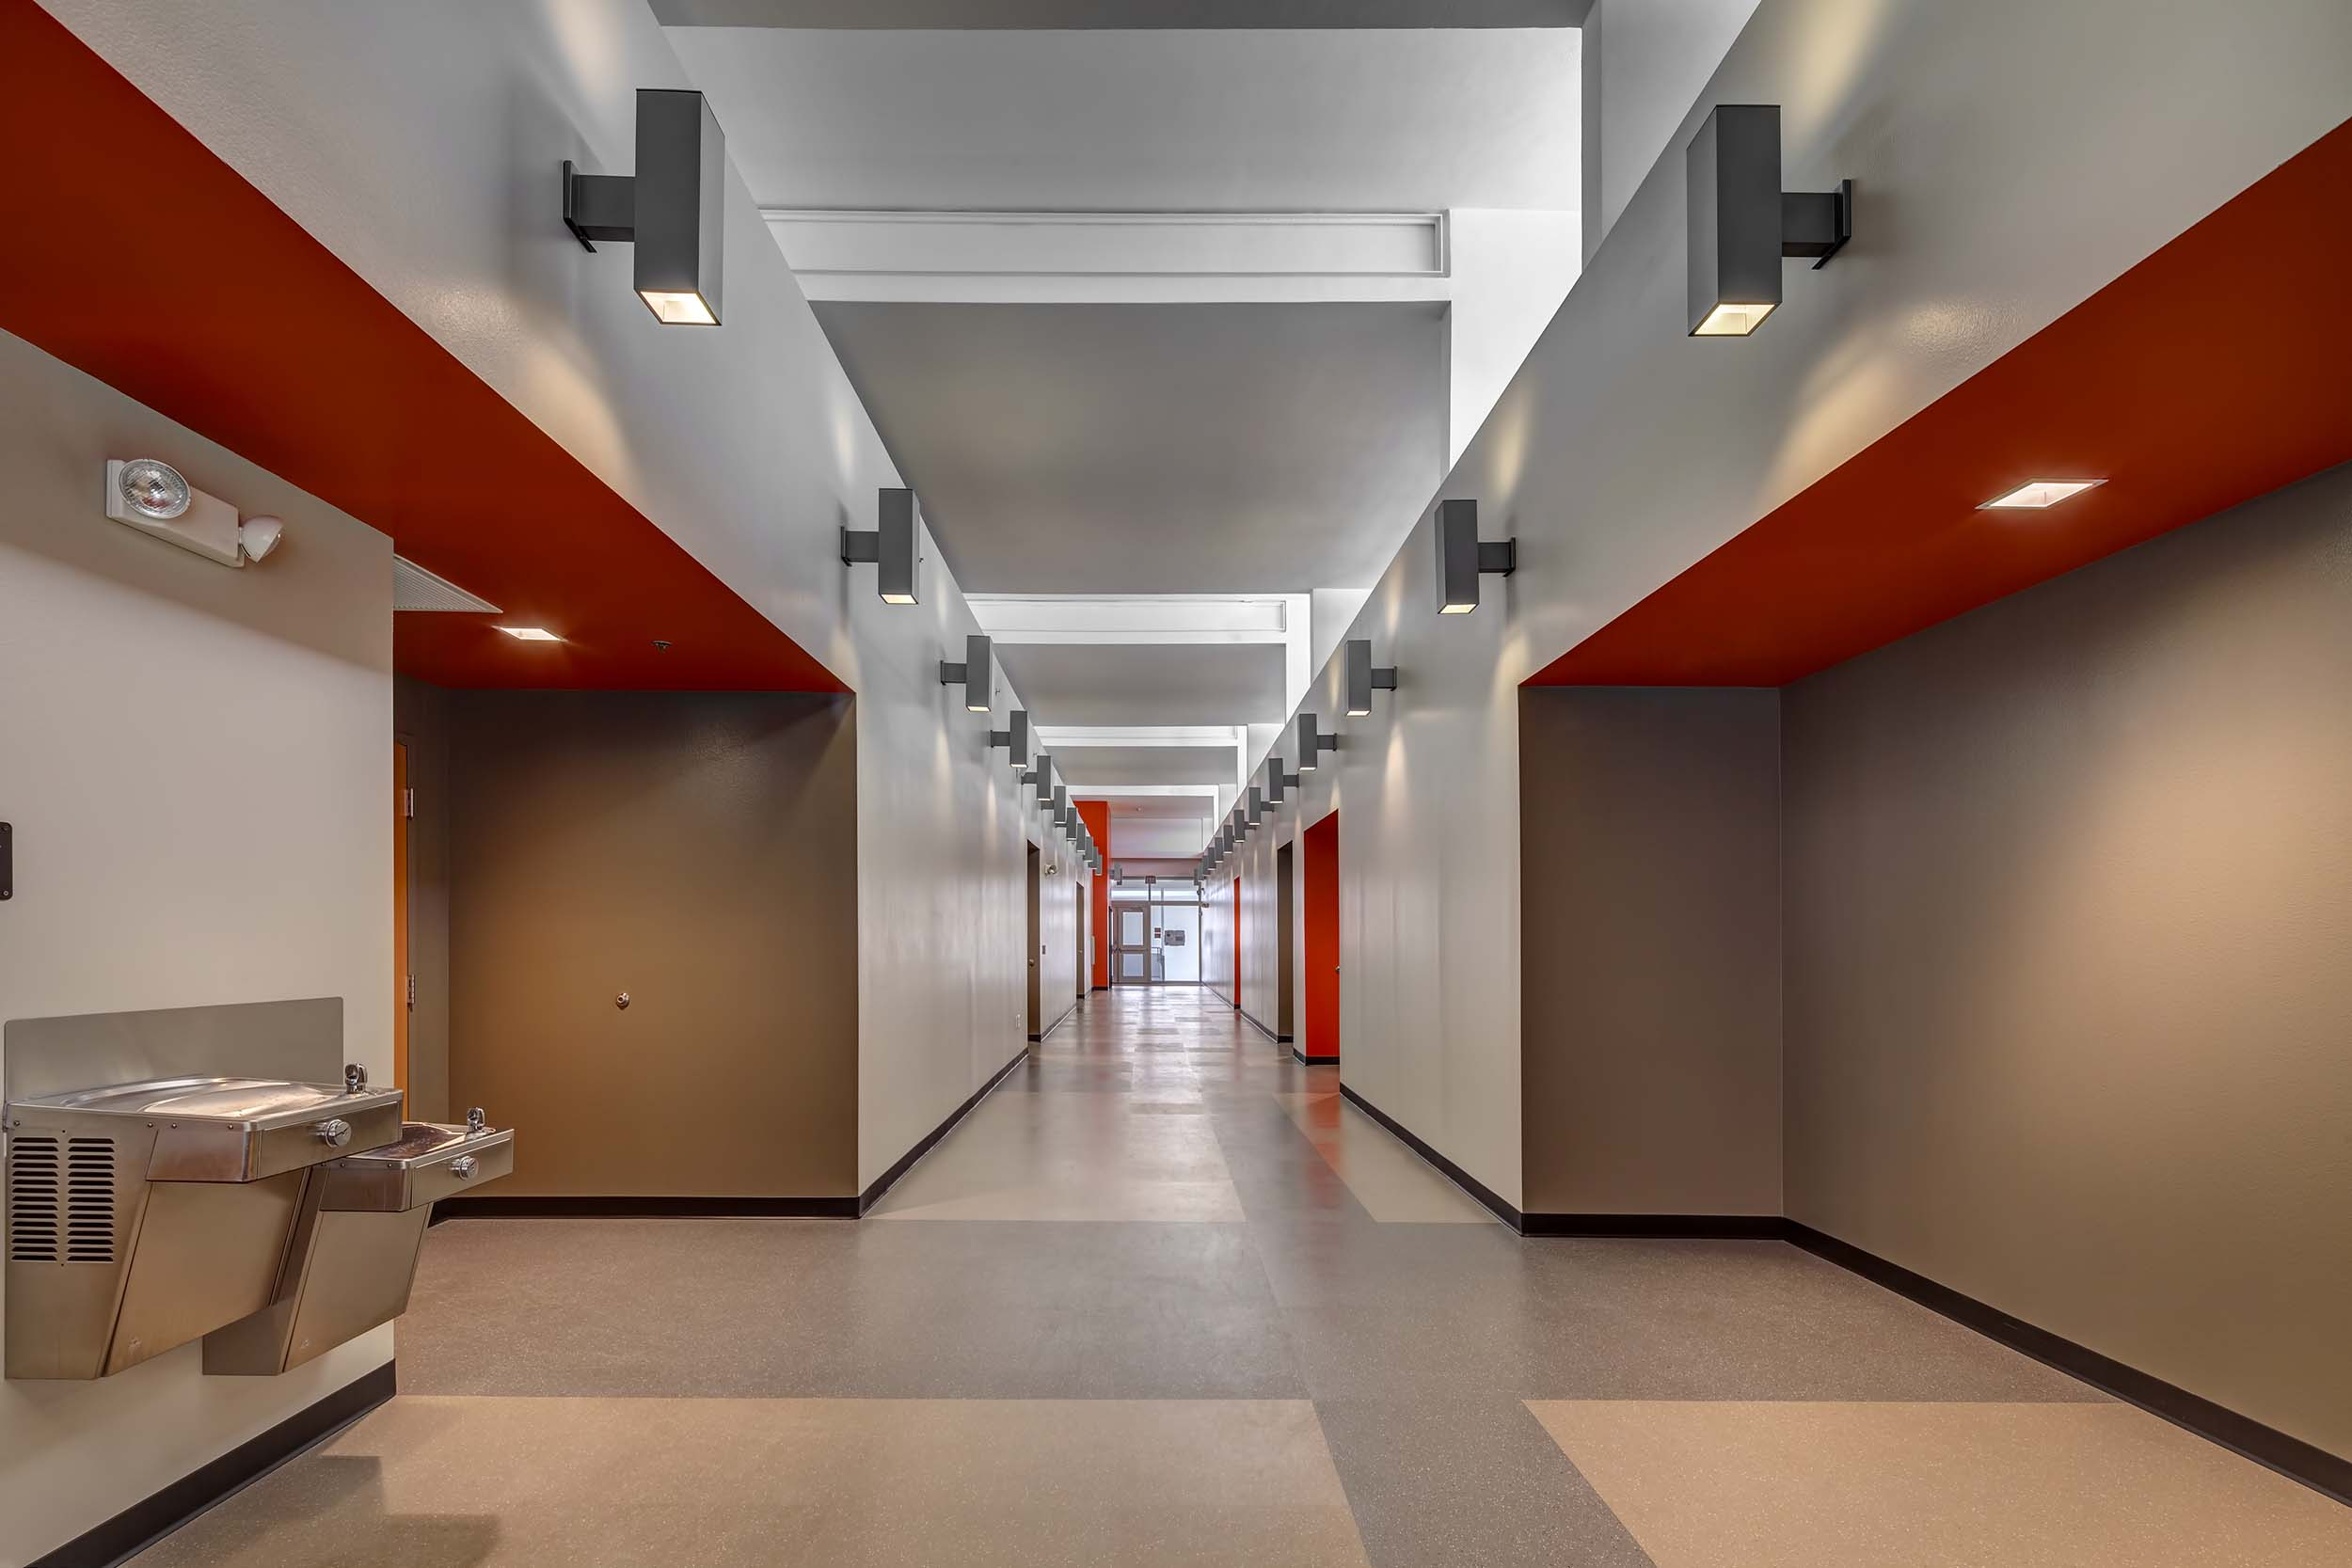 Sarasota High School Modernization